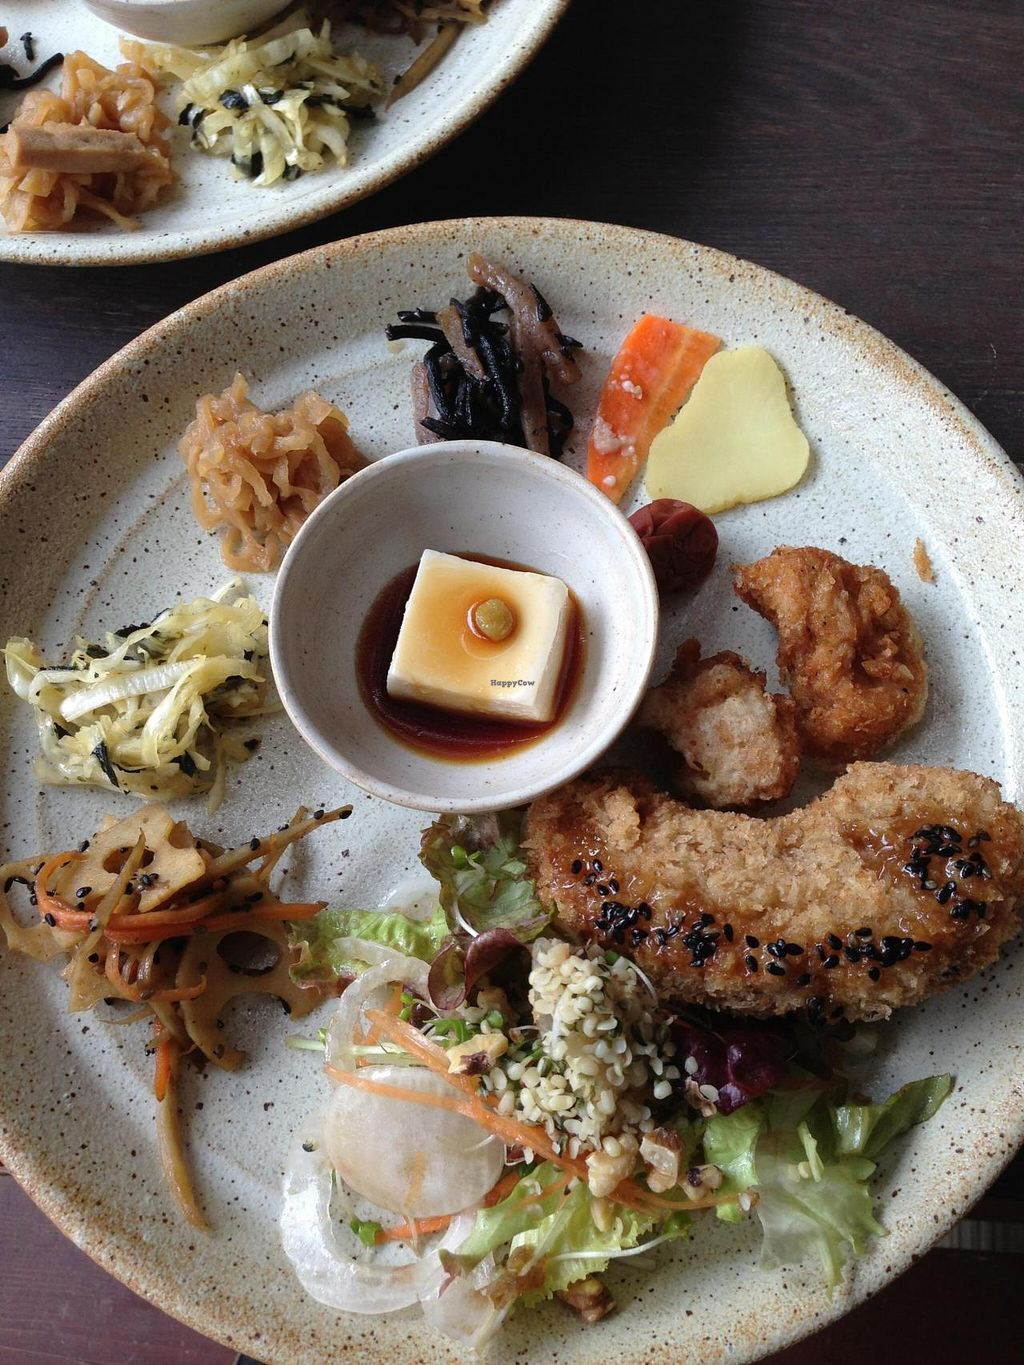 """Photo of Hanasaka  by <a href=""""/members/profile/Vegeiko"""">Vegeiko</a> <br/>Delicious lunch!! <br/> May 2, 2014  - <a href='/contact/abuse/image/46968/69132'>Report</a>"""